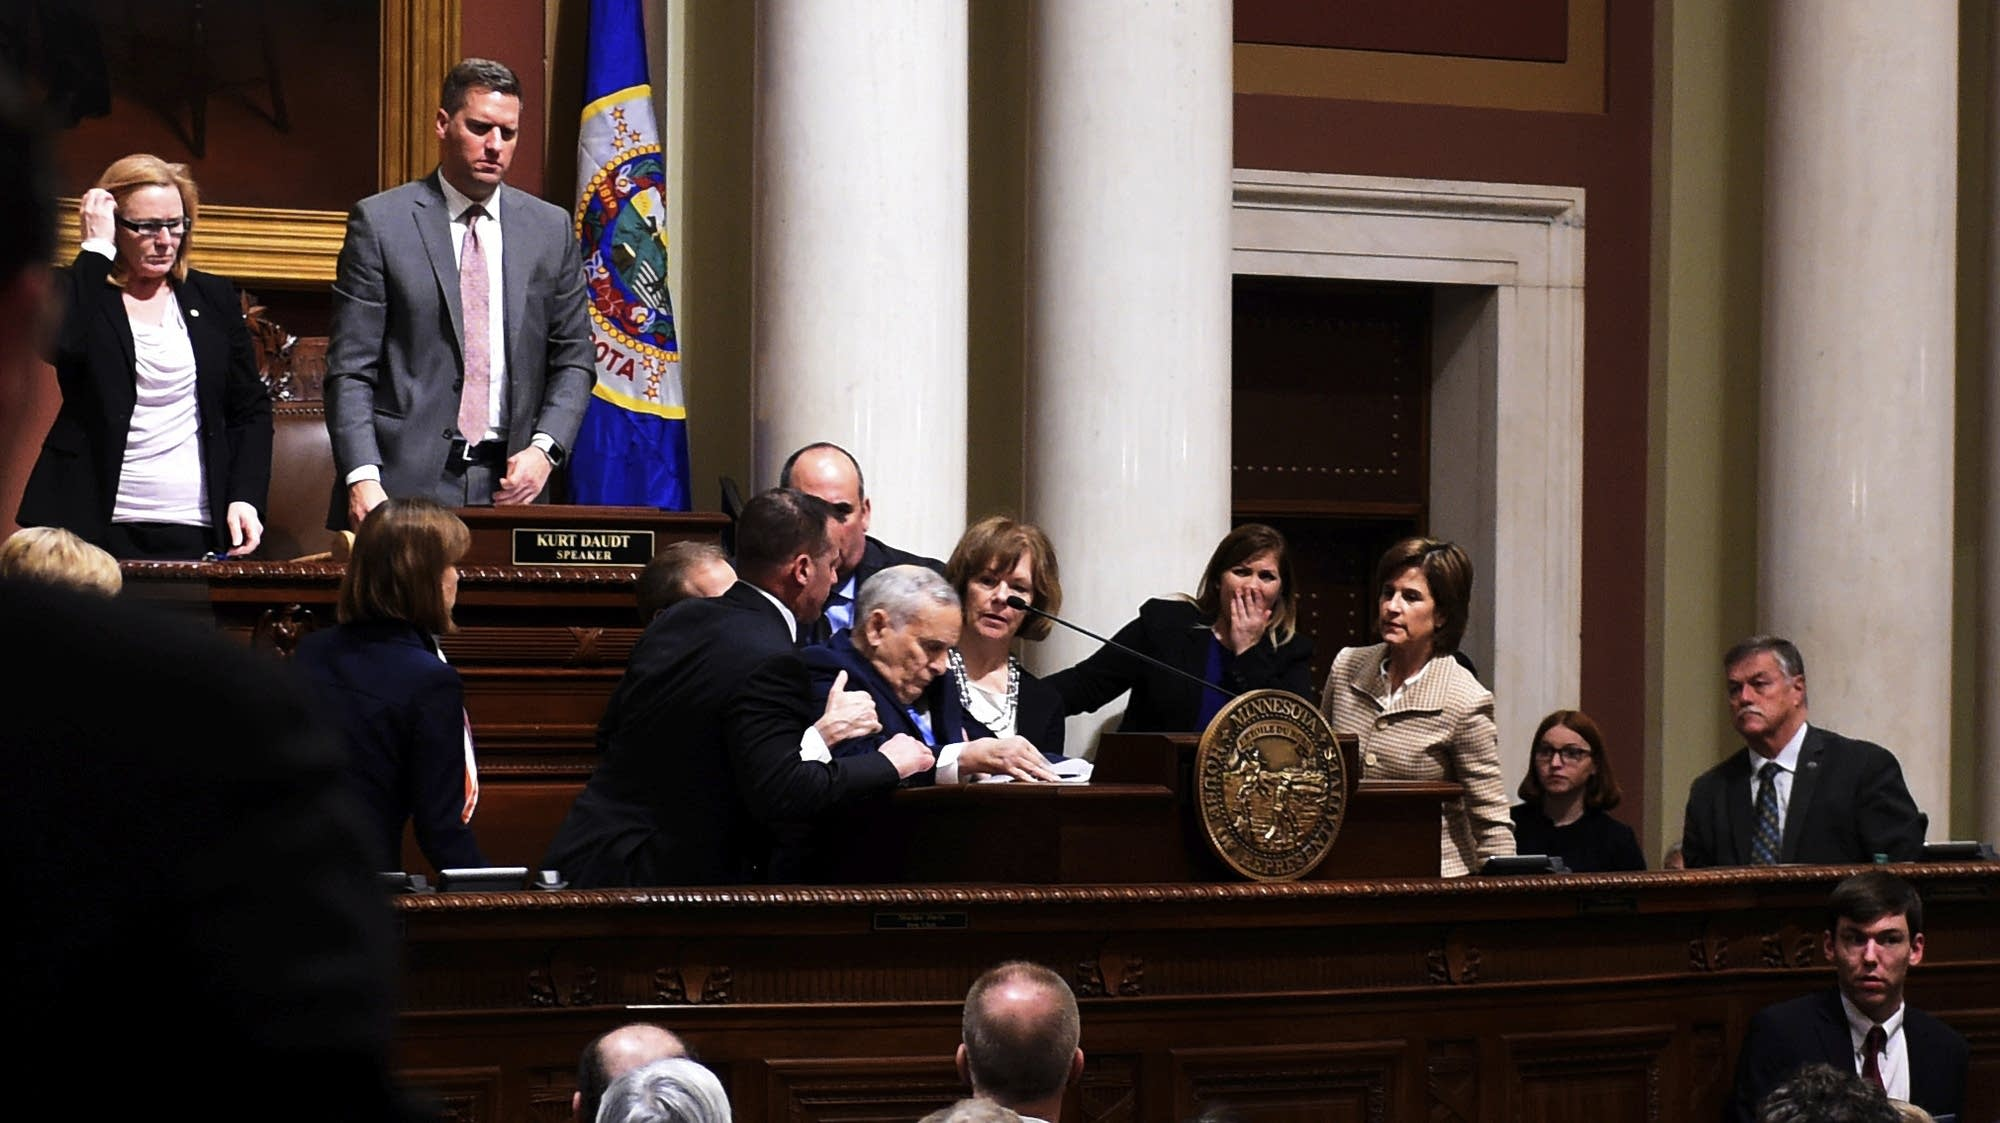 Gov. Mark Dayton collapses while giving his State of the State address.